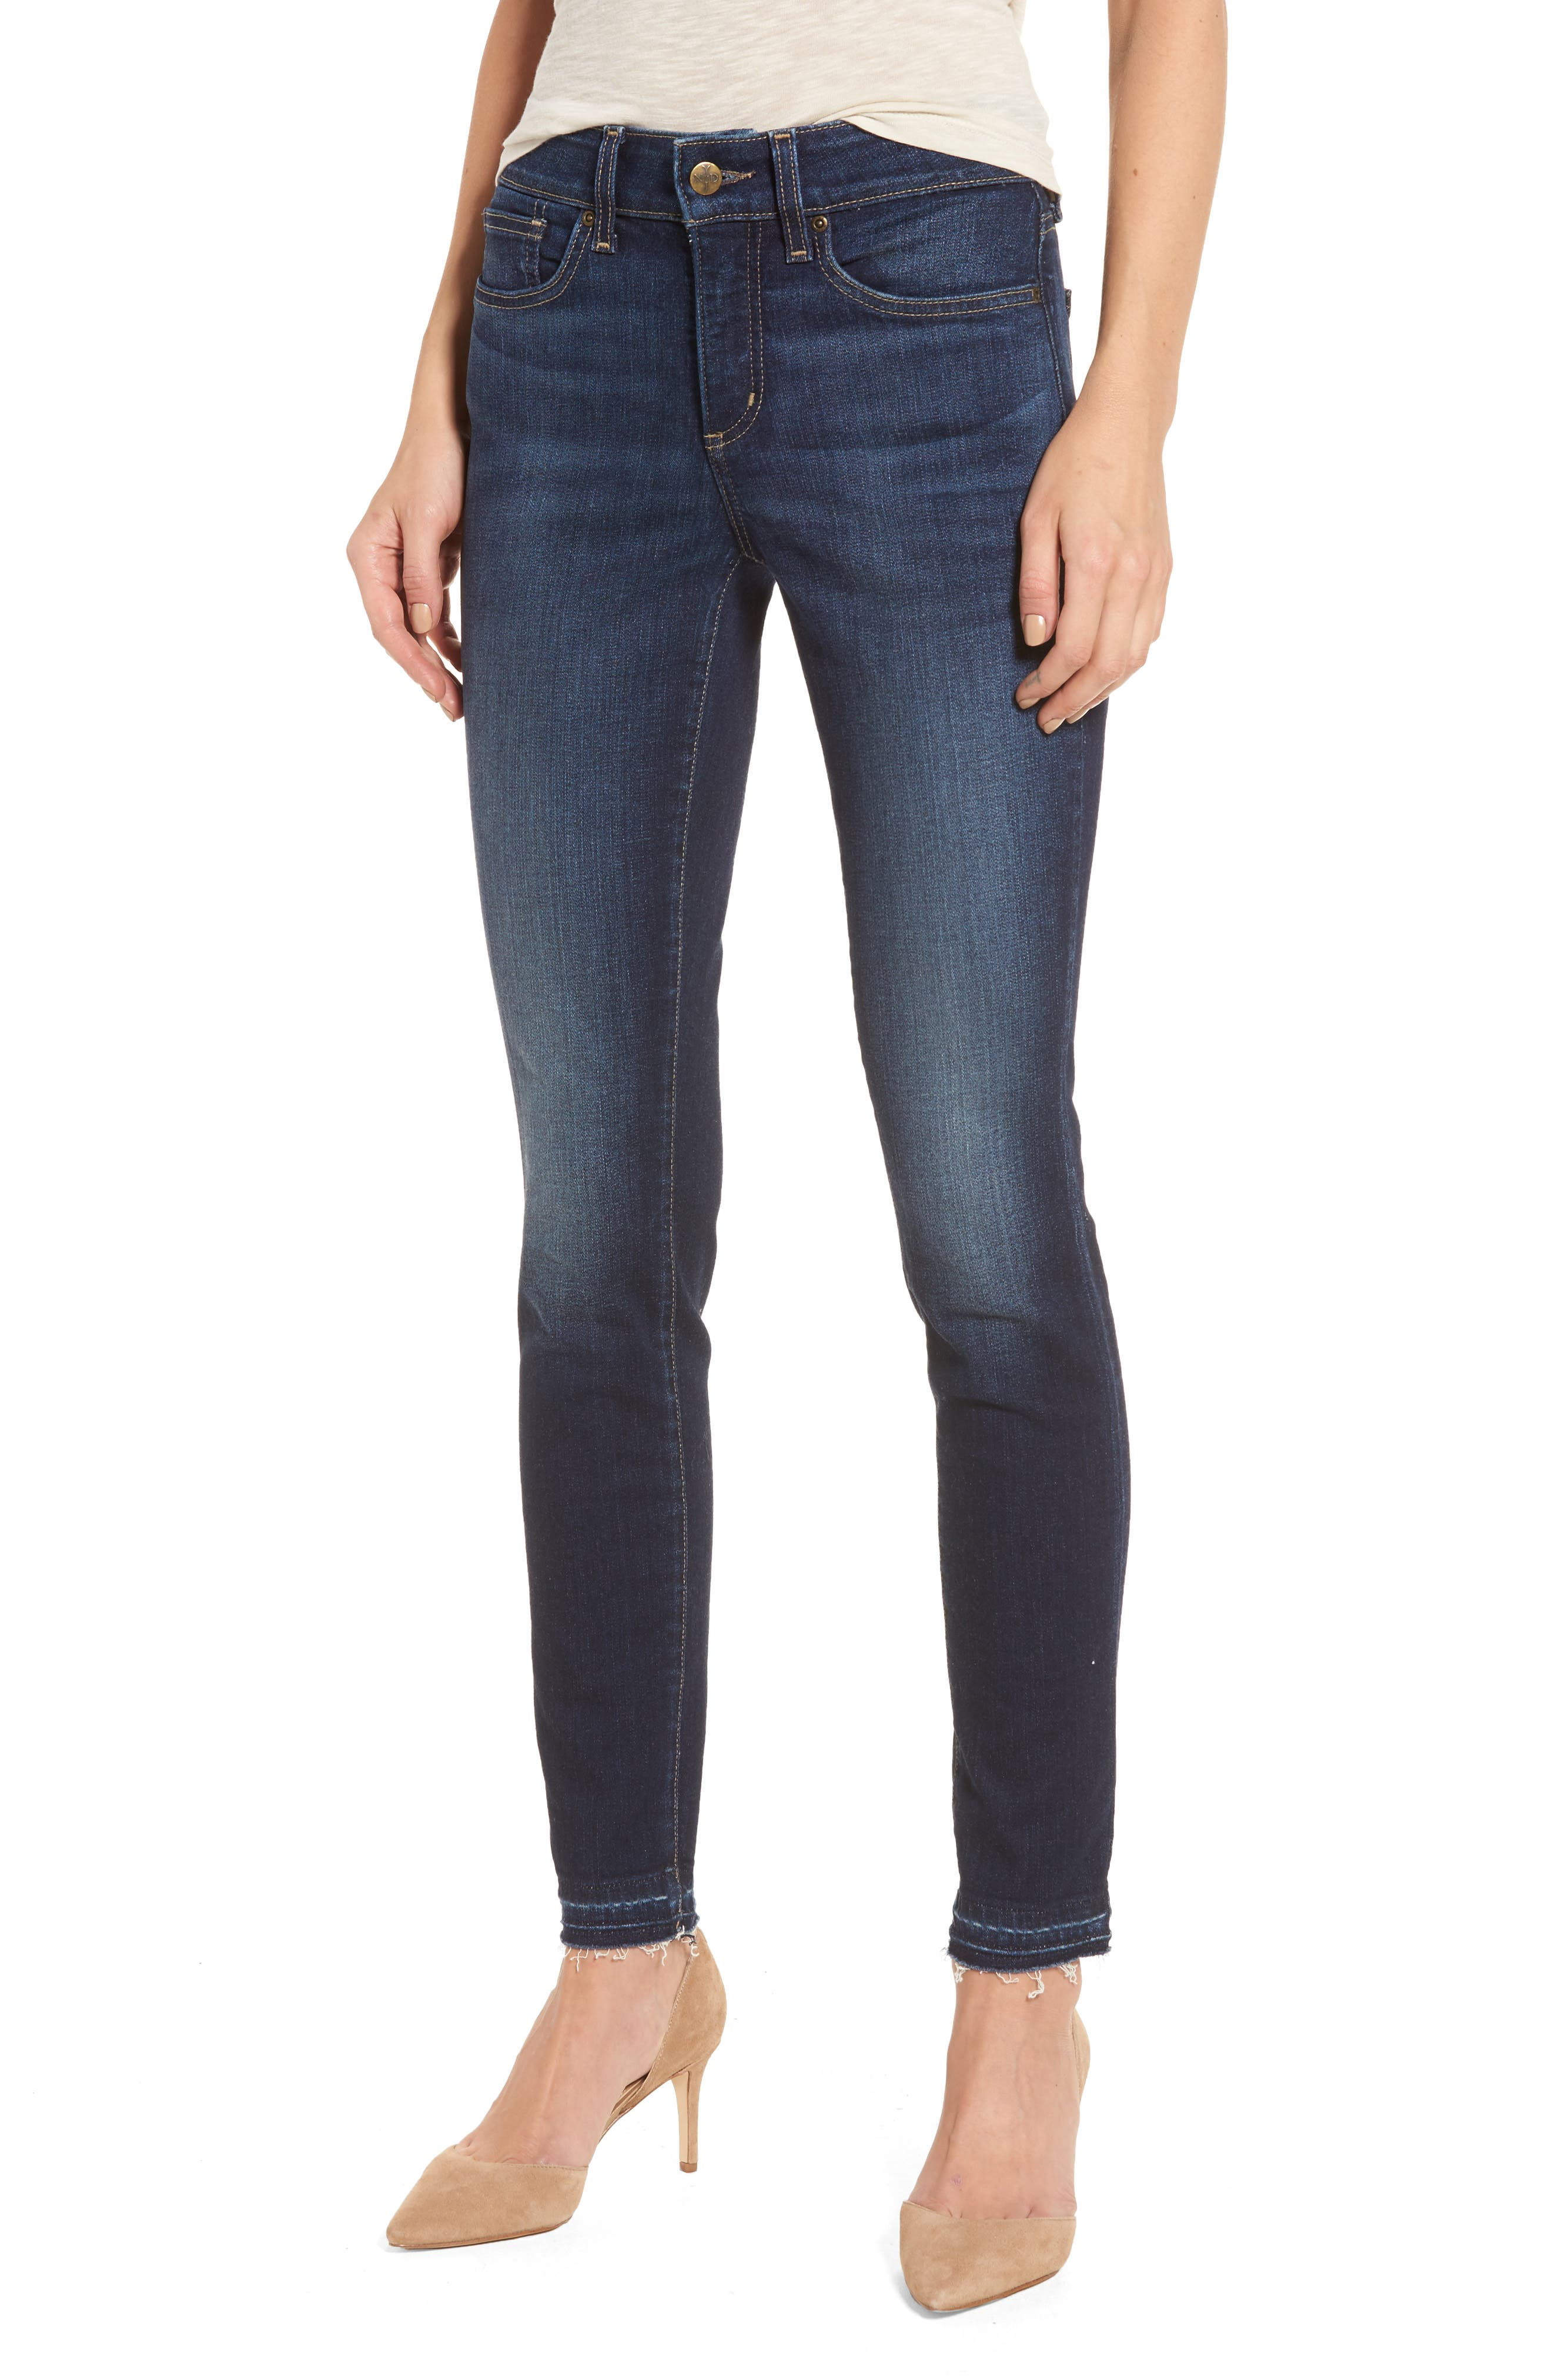 Alina Release Hem Stretch Ankle Jeans,                         Main,                         color, 421